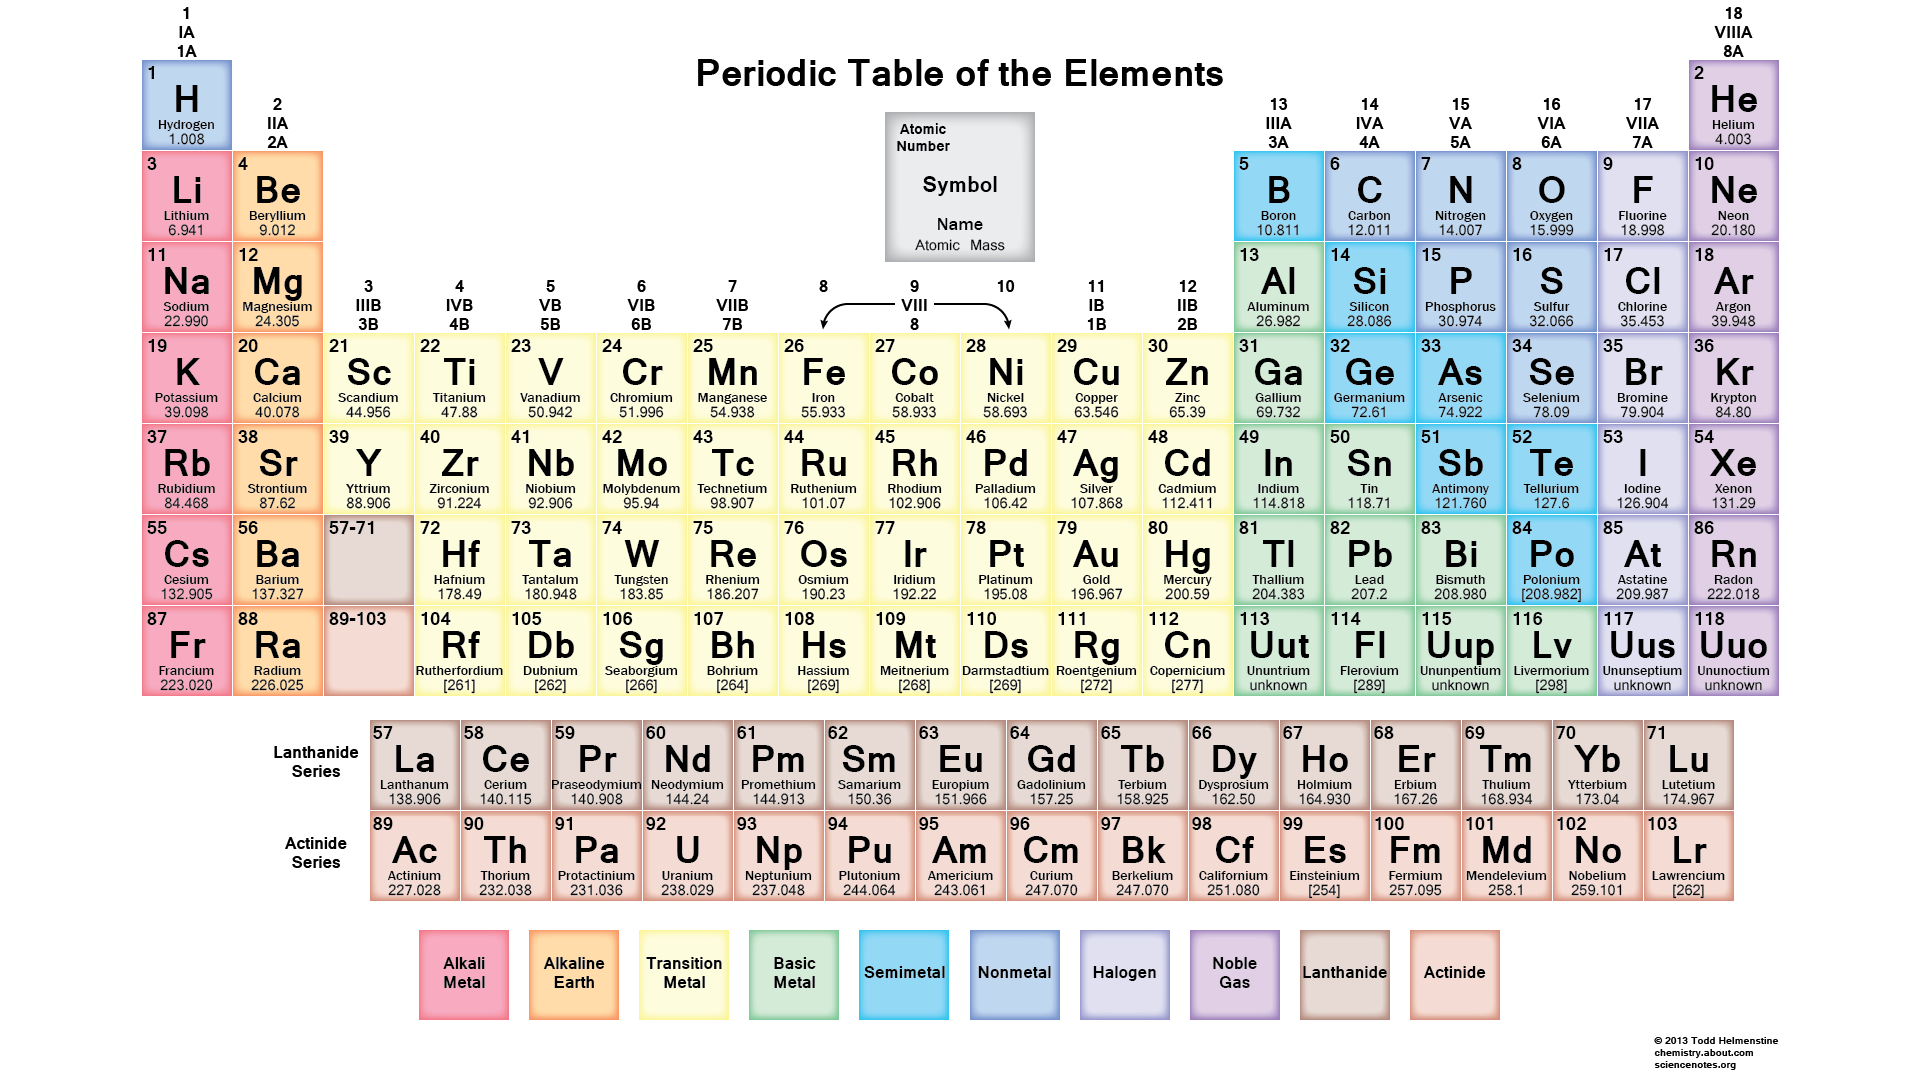 Printable periodic tables pdf periodic table printing and chemistry printable periodic table of the elements periodic tables to download or print urtaz Images